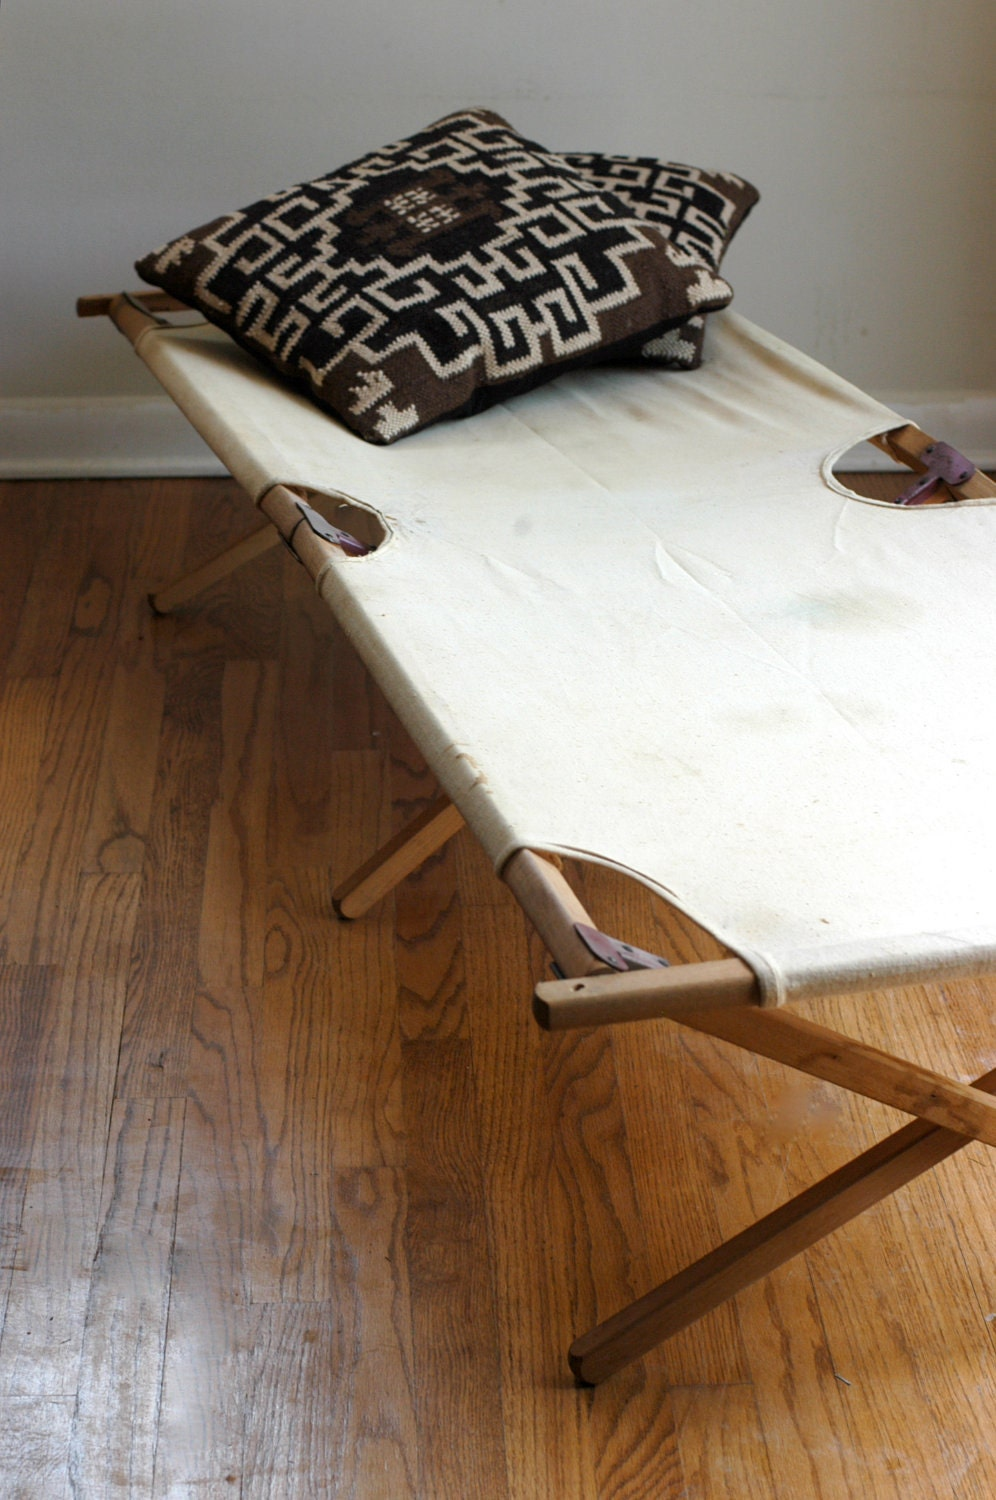 Vintage Wooden Camping Cot by bonnbonn on Etsy